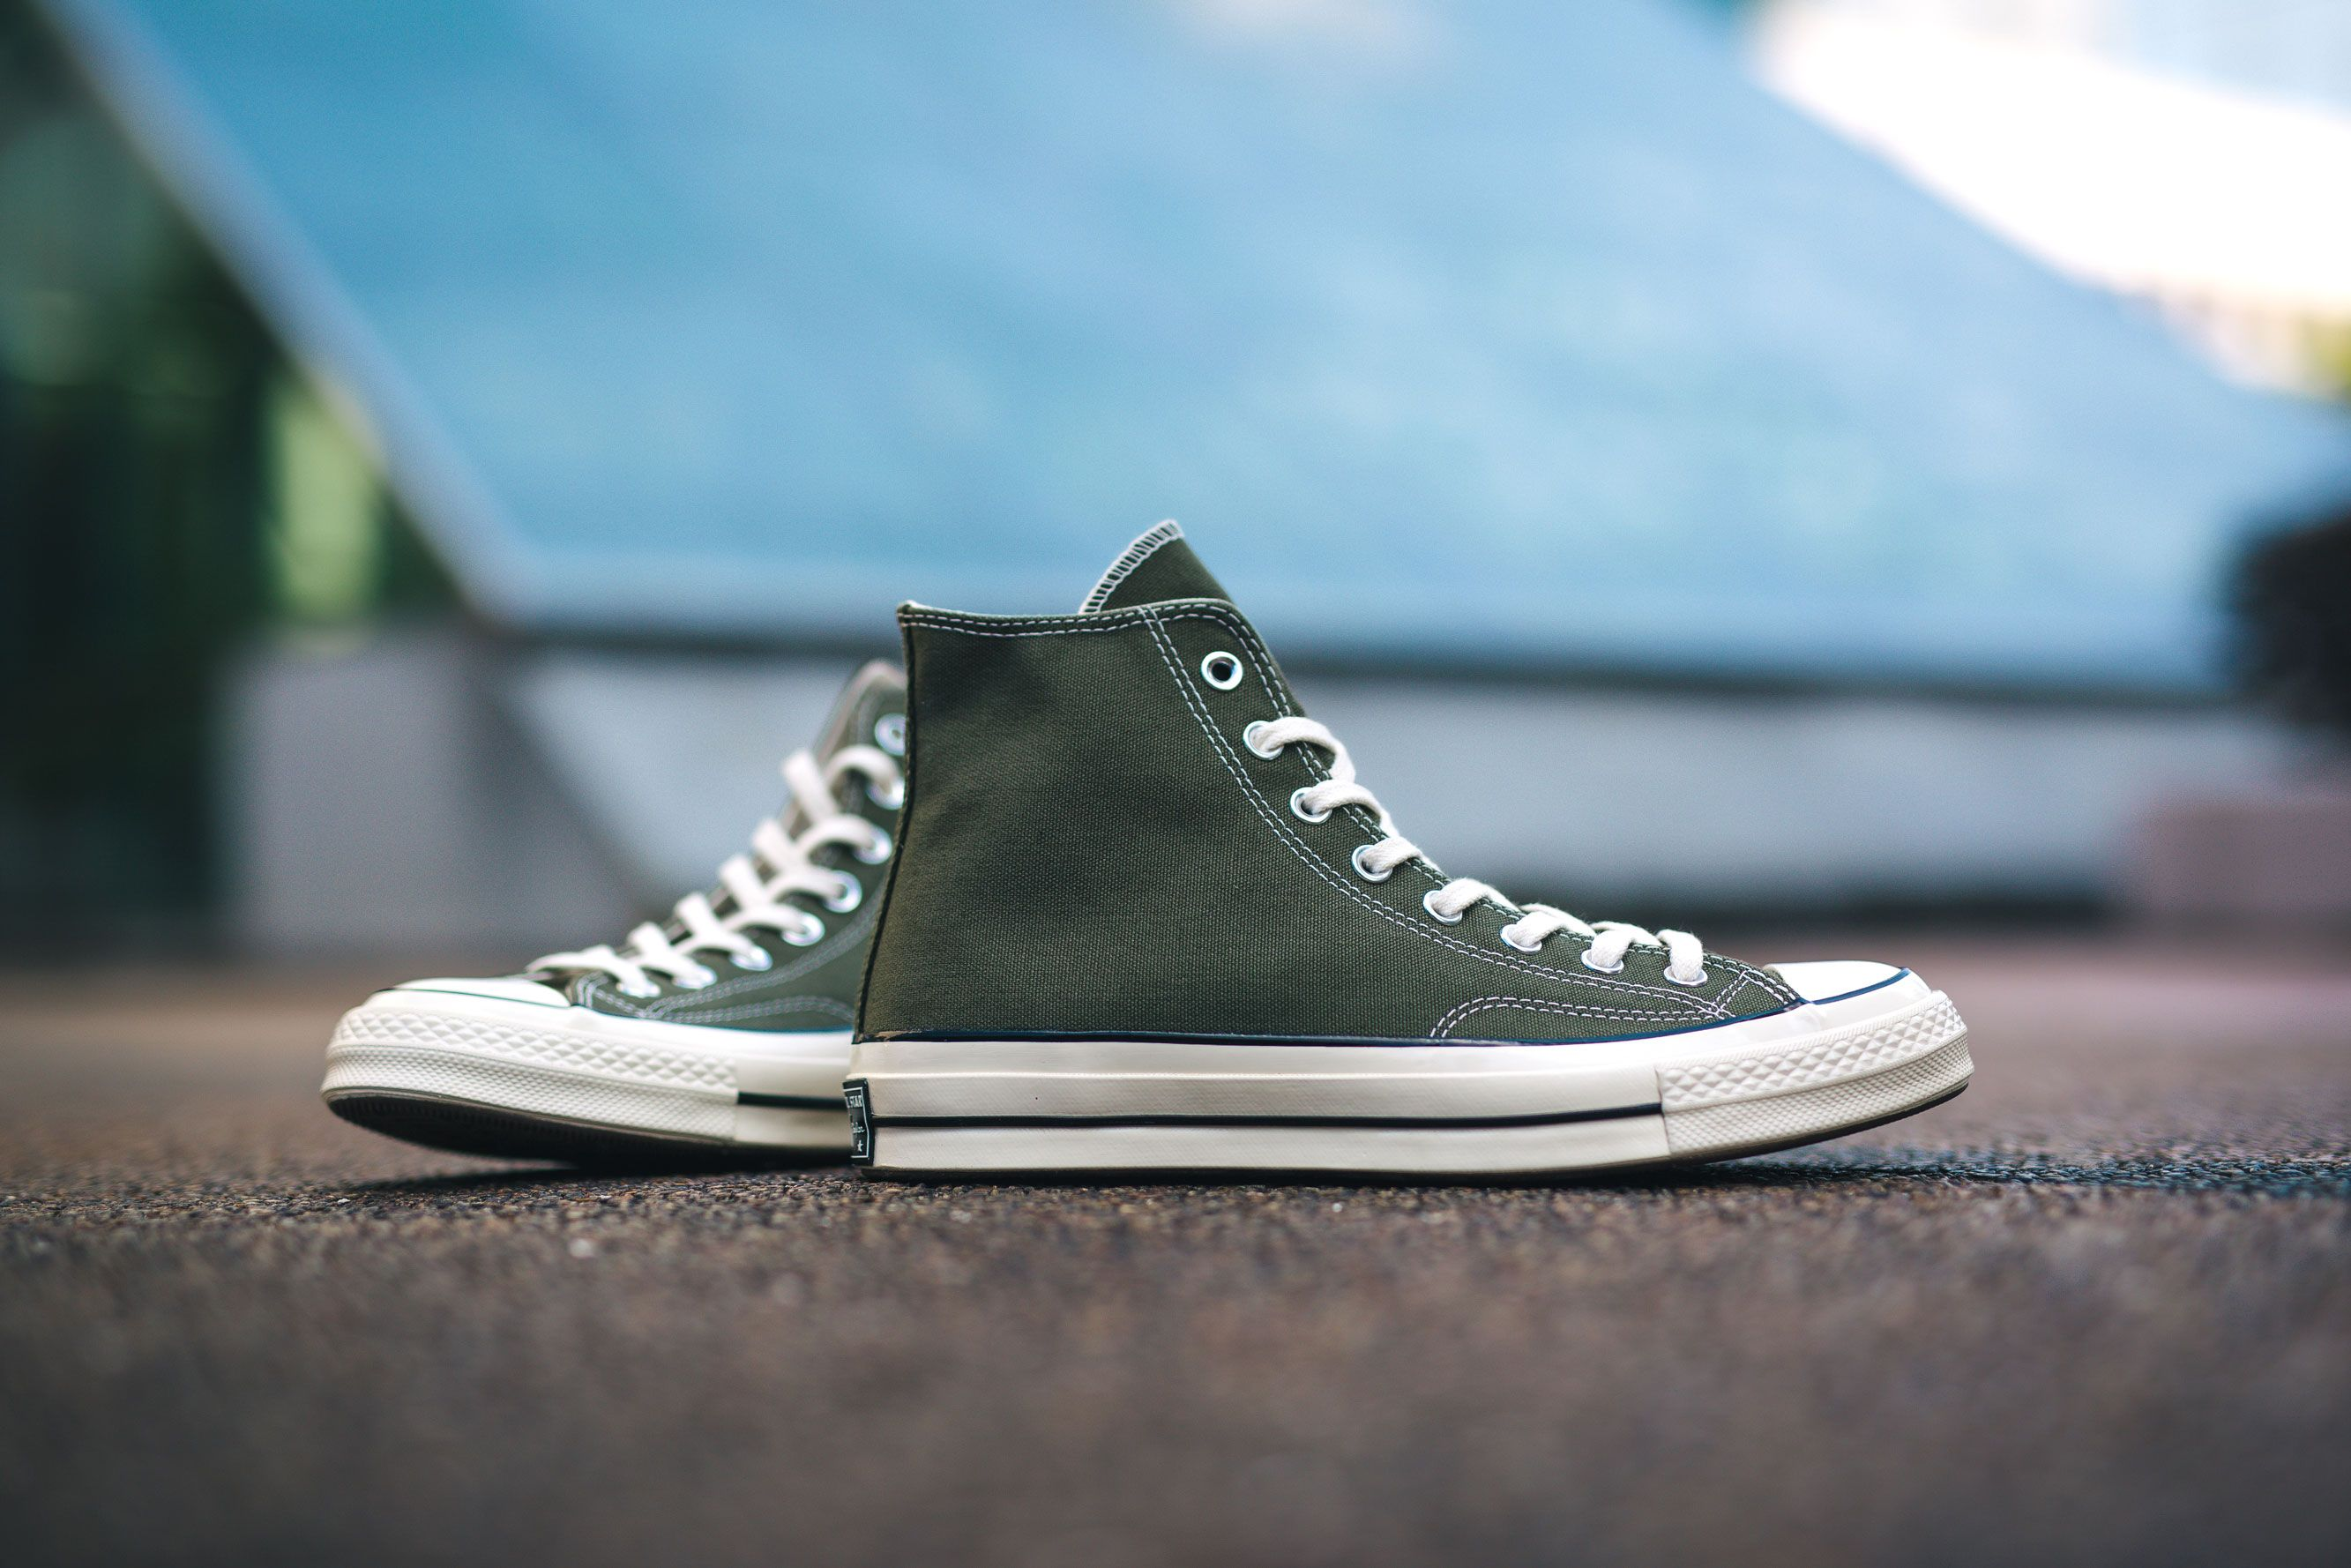 770b3da04c2 The Converse Chuck  70 is re-crafted sneaker that uses modern details to  celebrate the original  ChuckTaylor from the 1970s